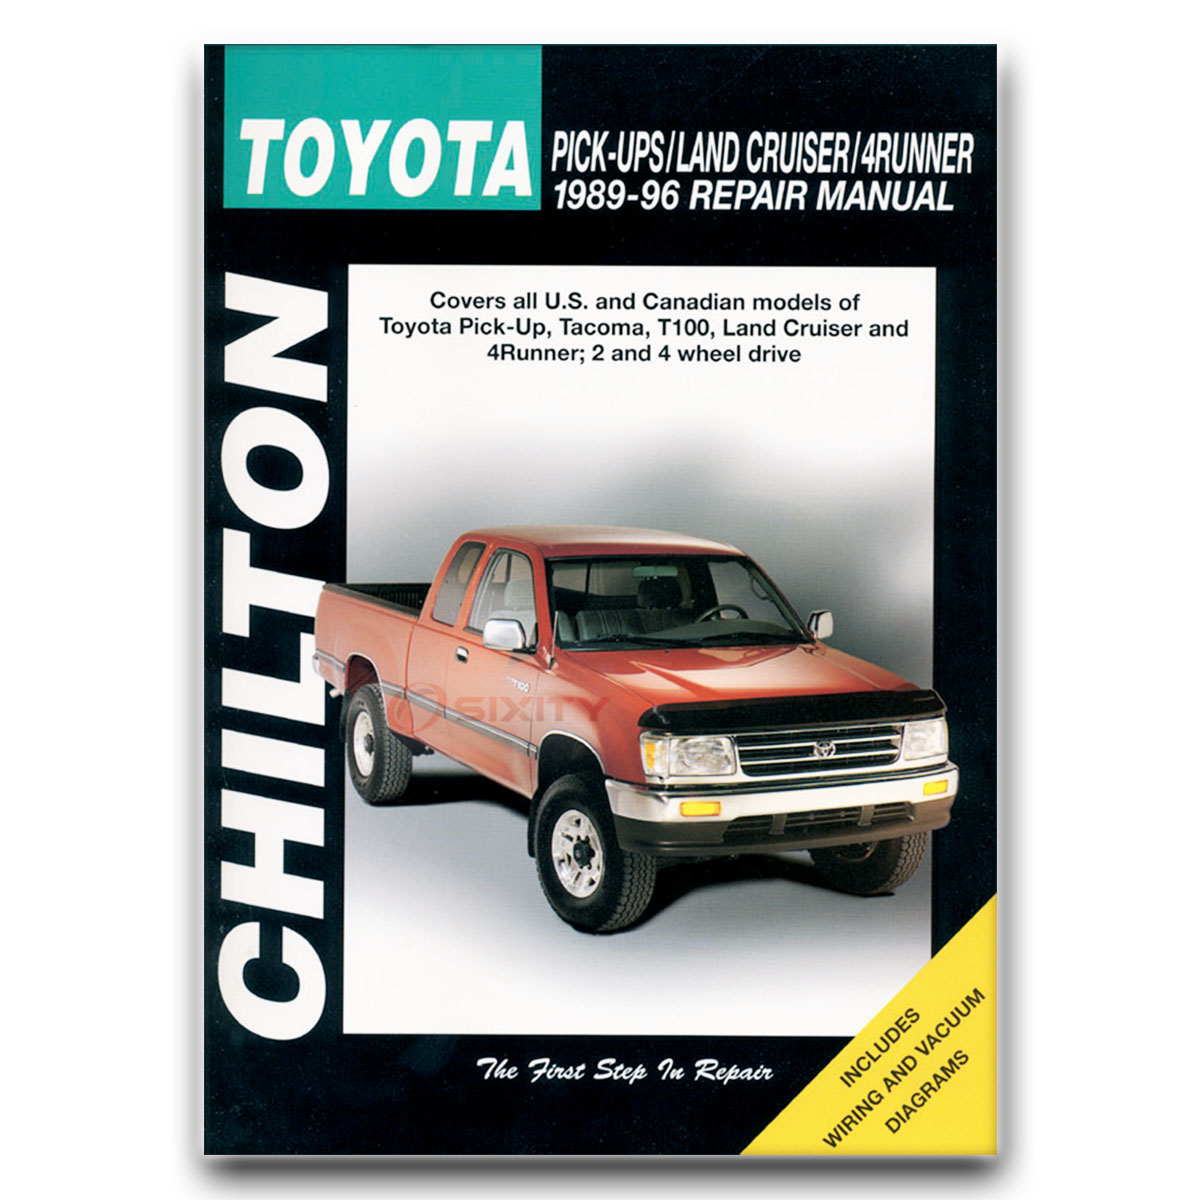 Chilton Repair Manual for Toyota Pickup SR5 Base DLX Shop Service Garage  Boo je